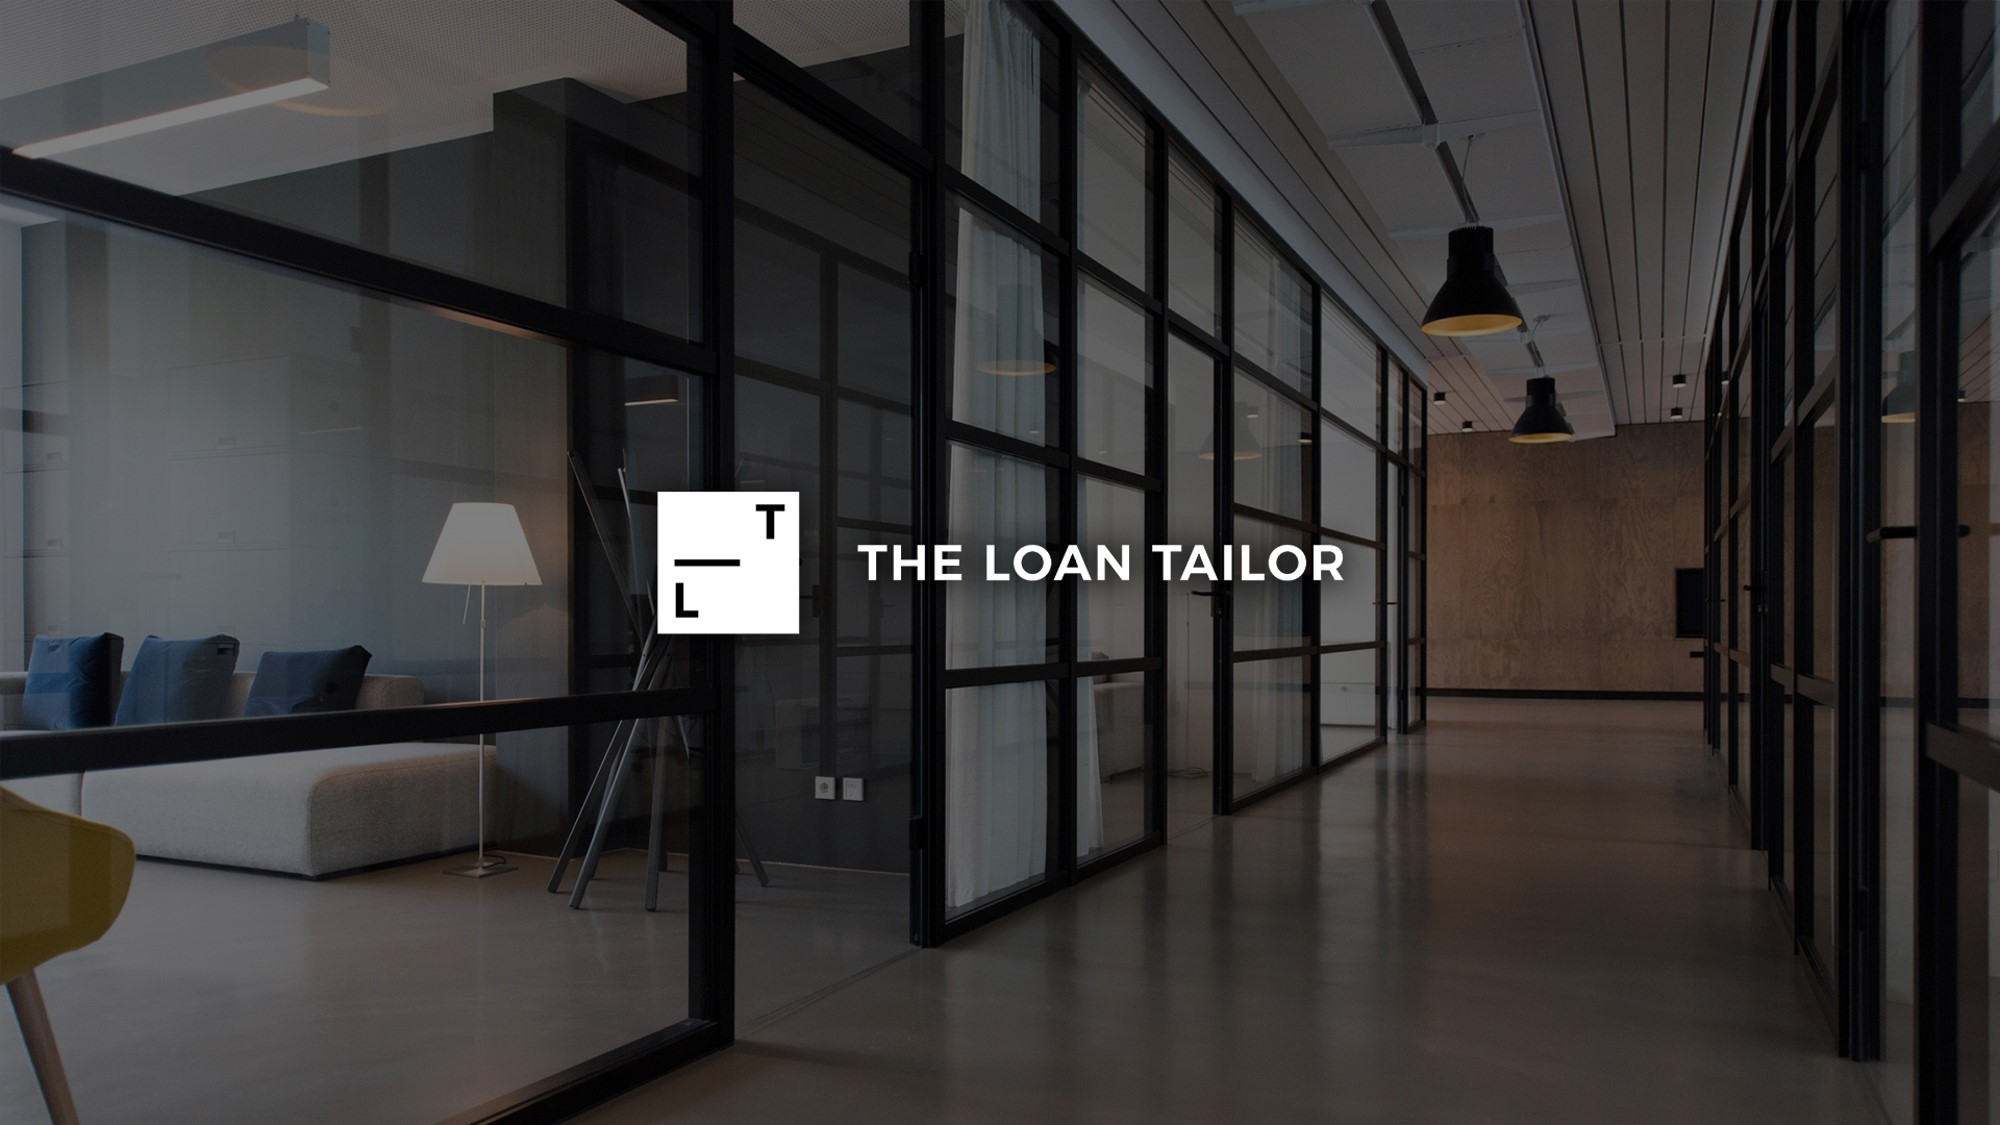 The Loan Tailor